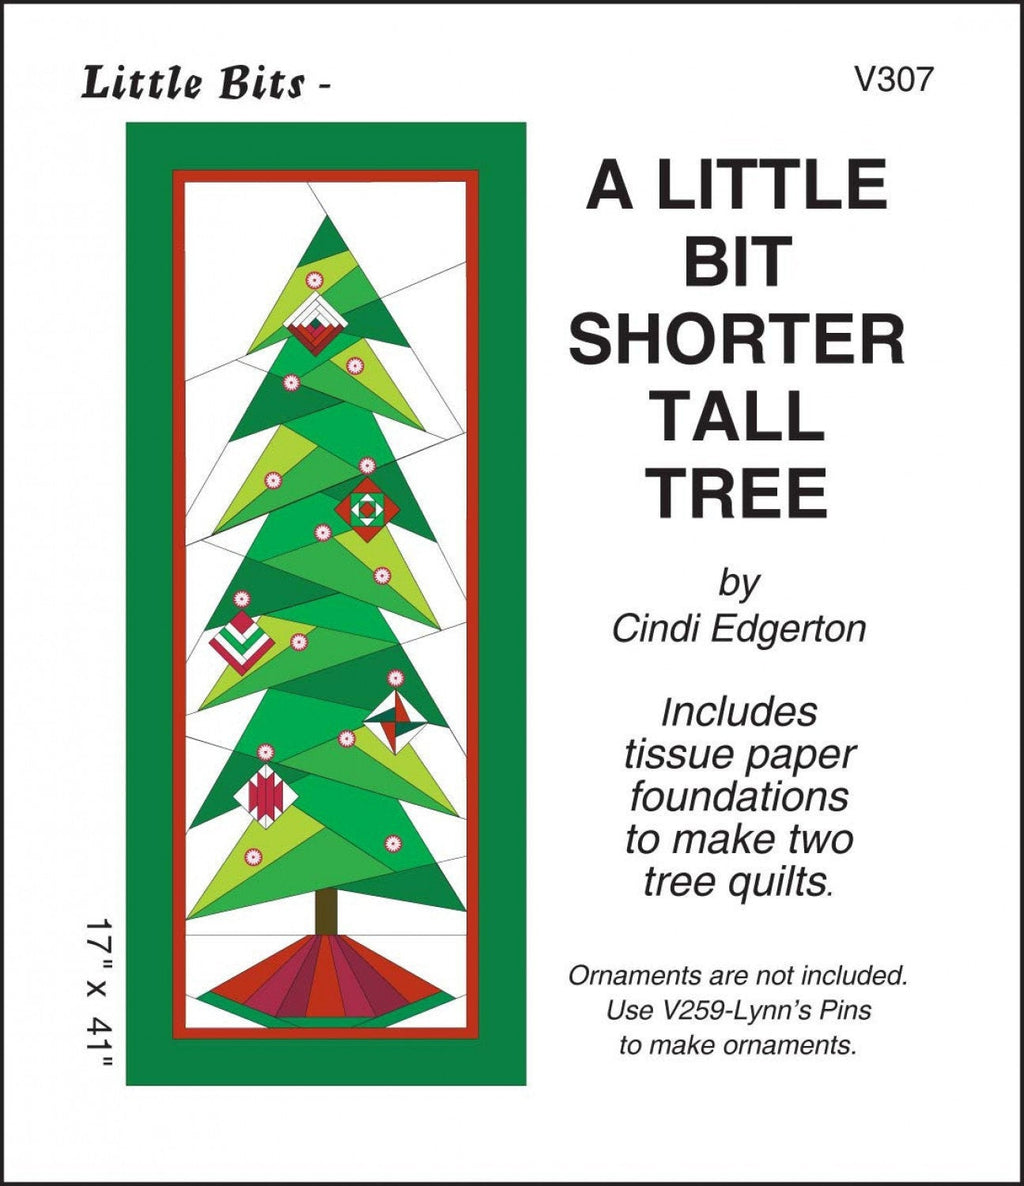 A Little Bit - Shorter Tall Tree Quilt Pattern - brewstitched.com